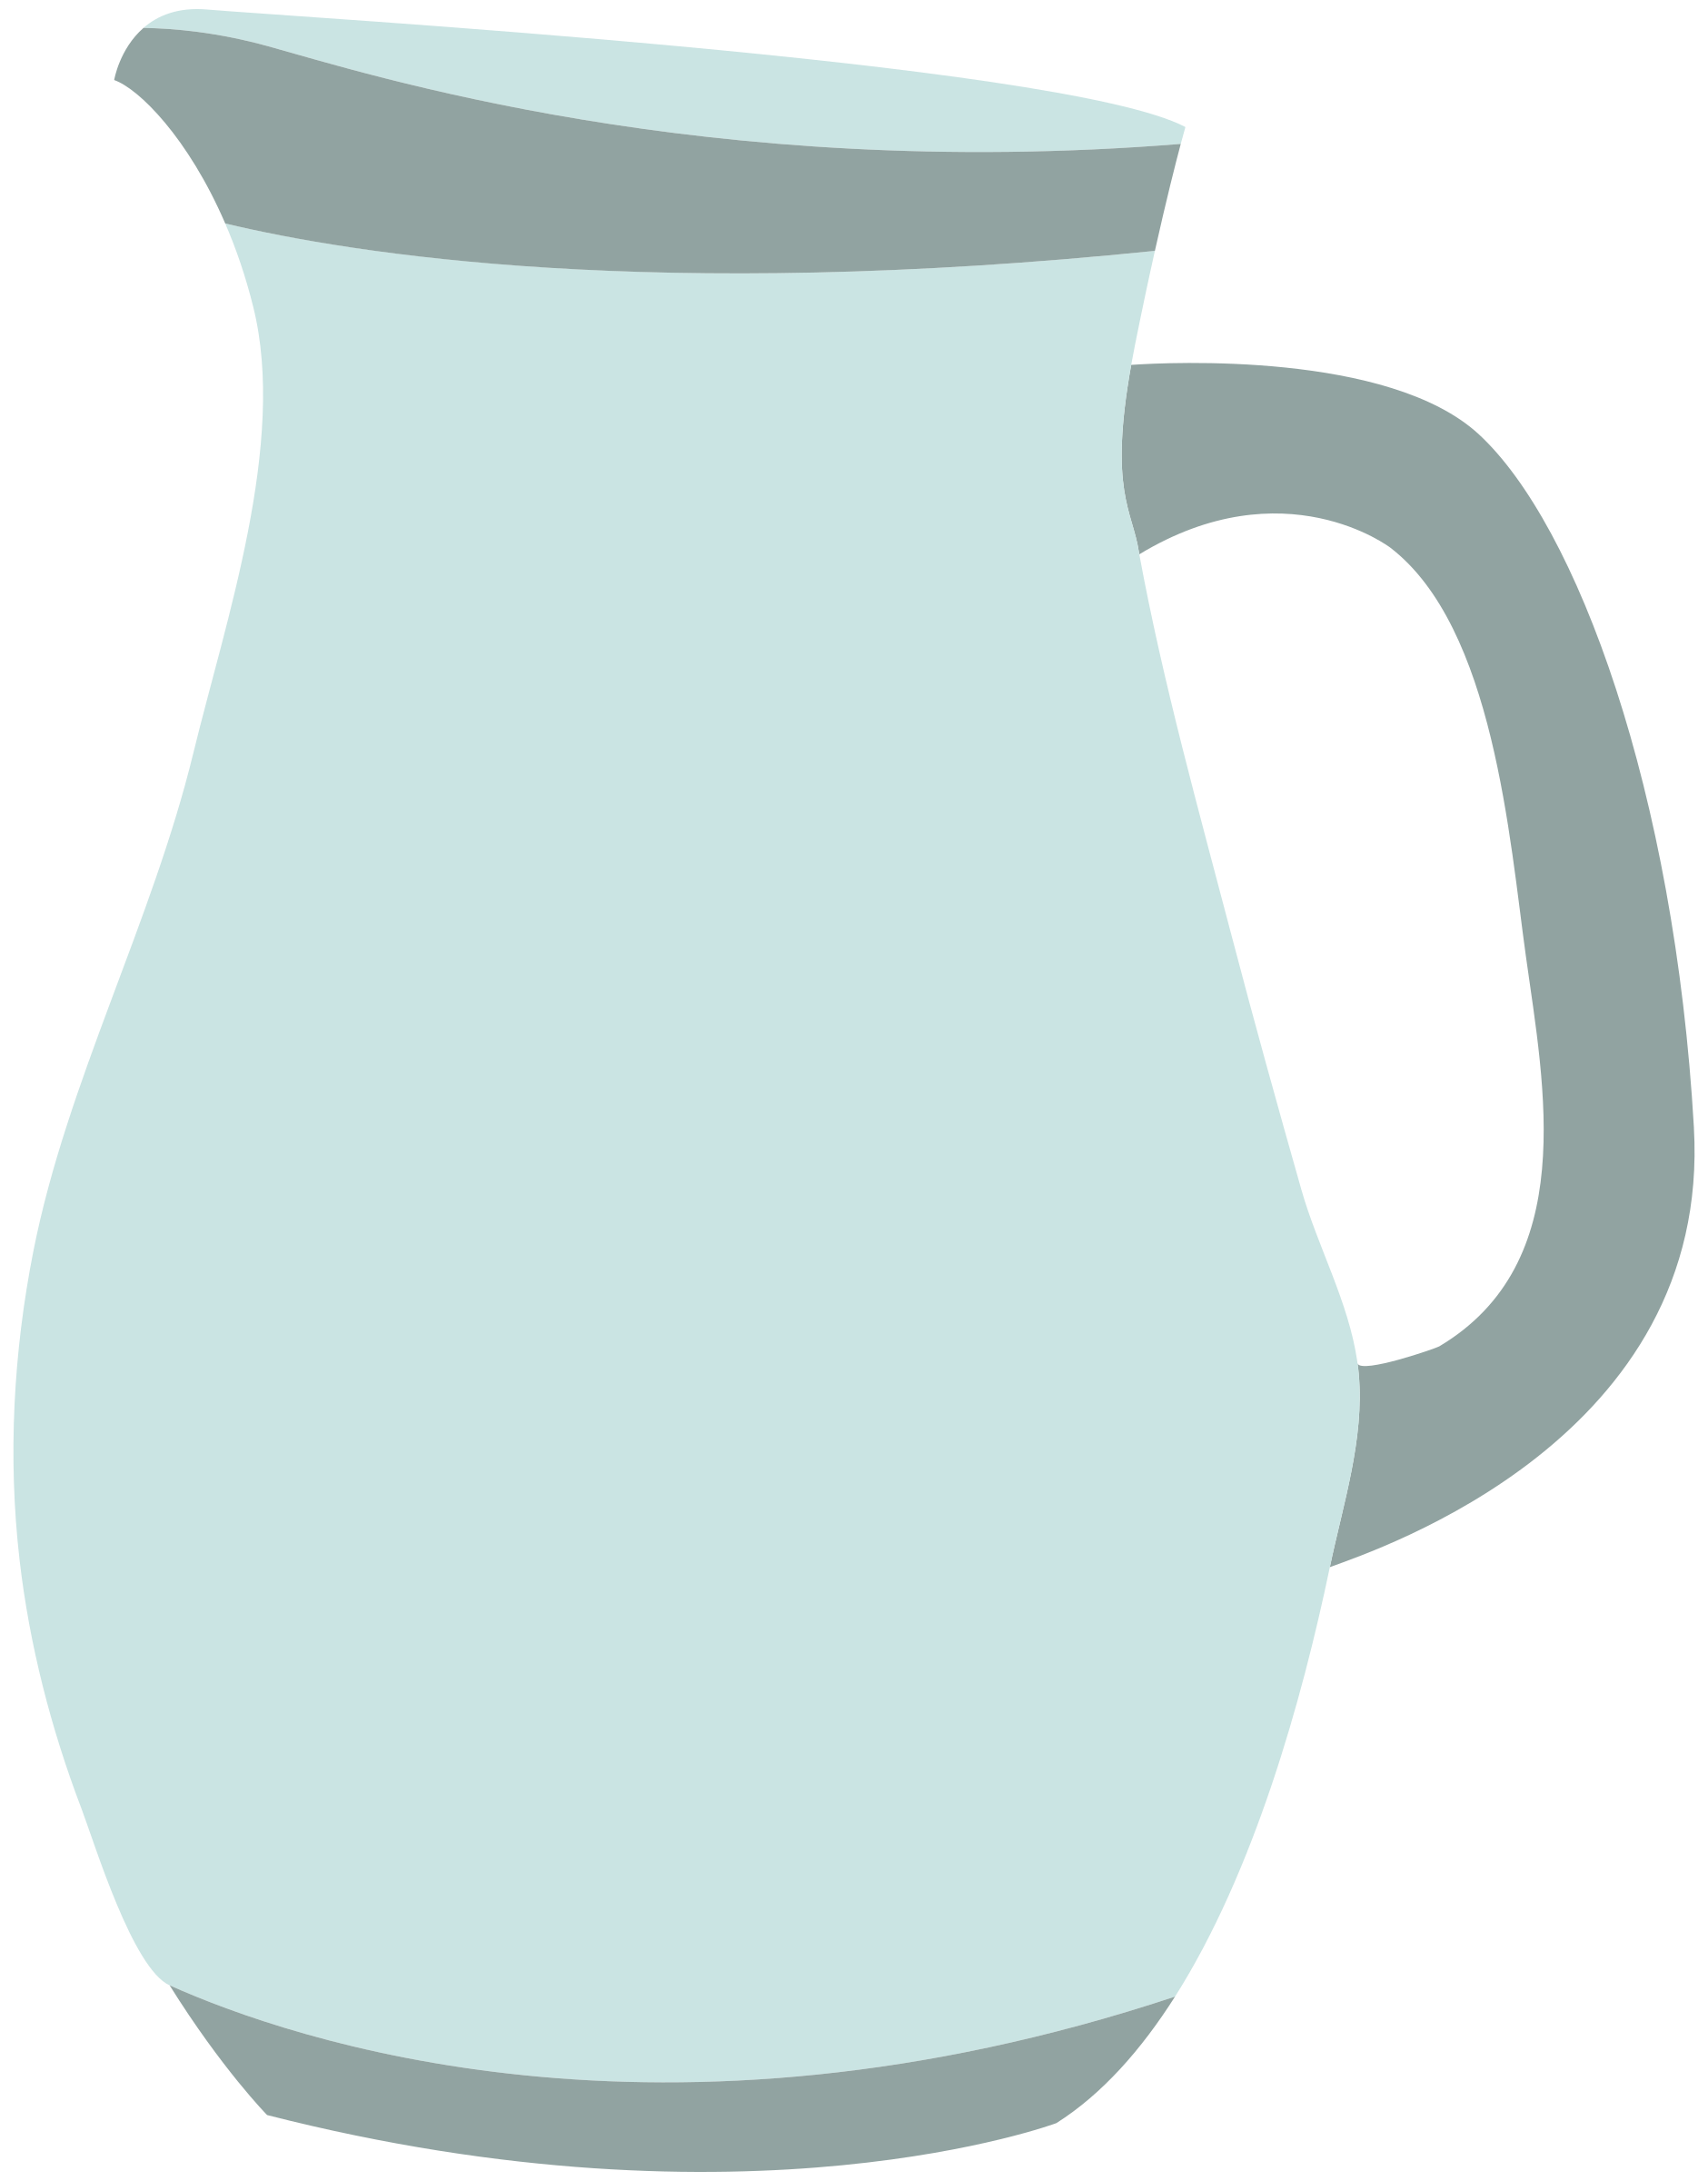 Jug or Pitcher by SunKing2